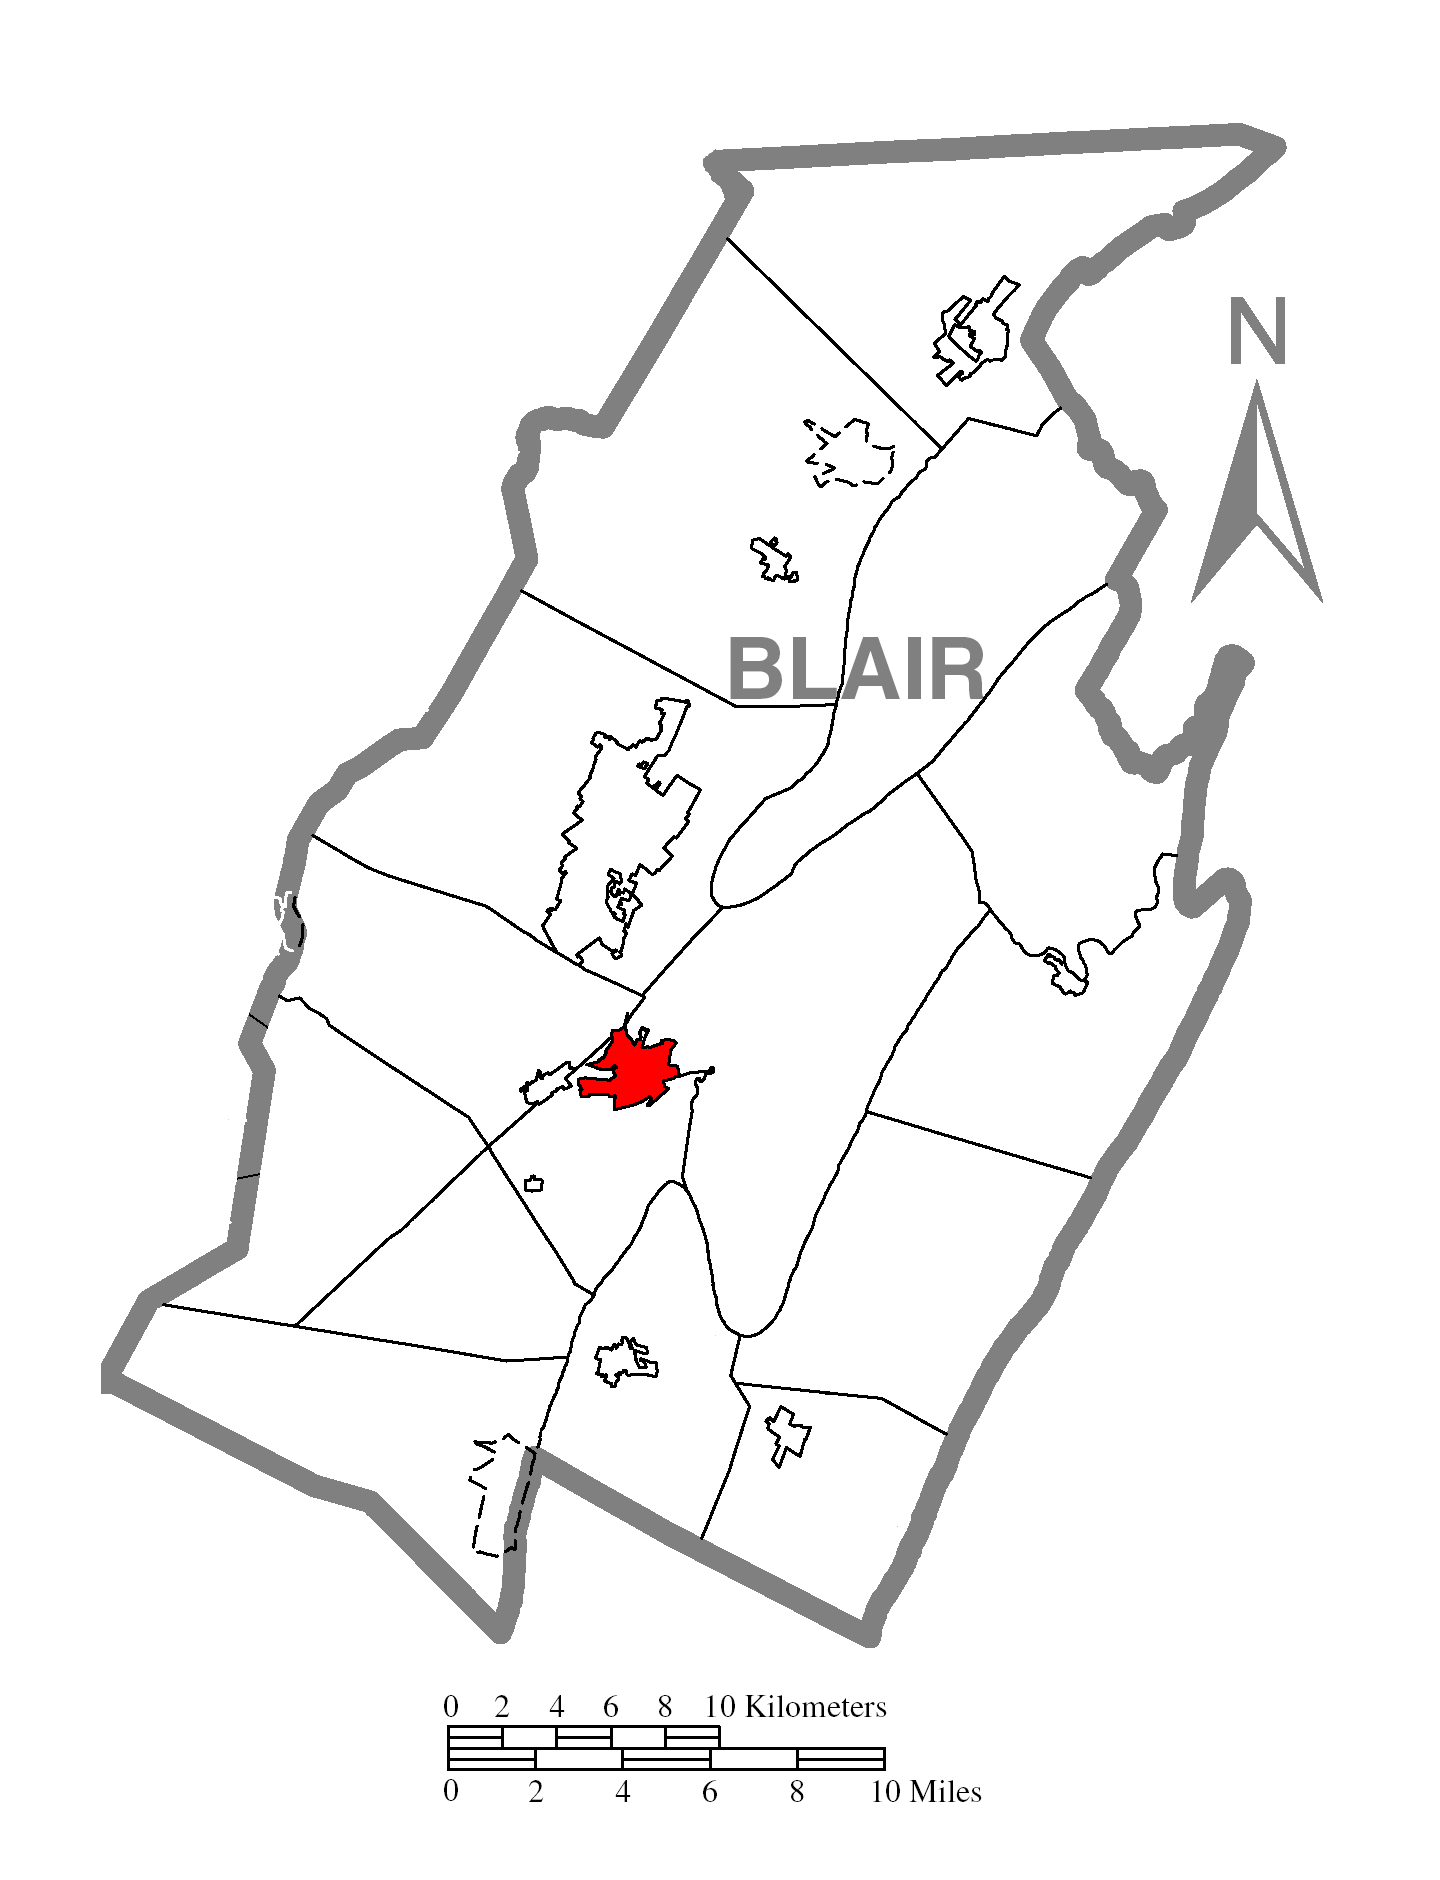 Map Of Hollidaysburgc Blair Countyc Pennsylvania Highlighted